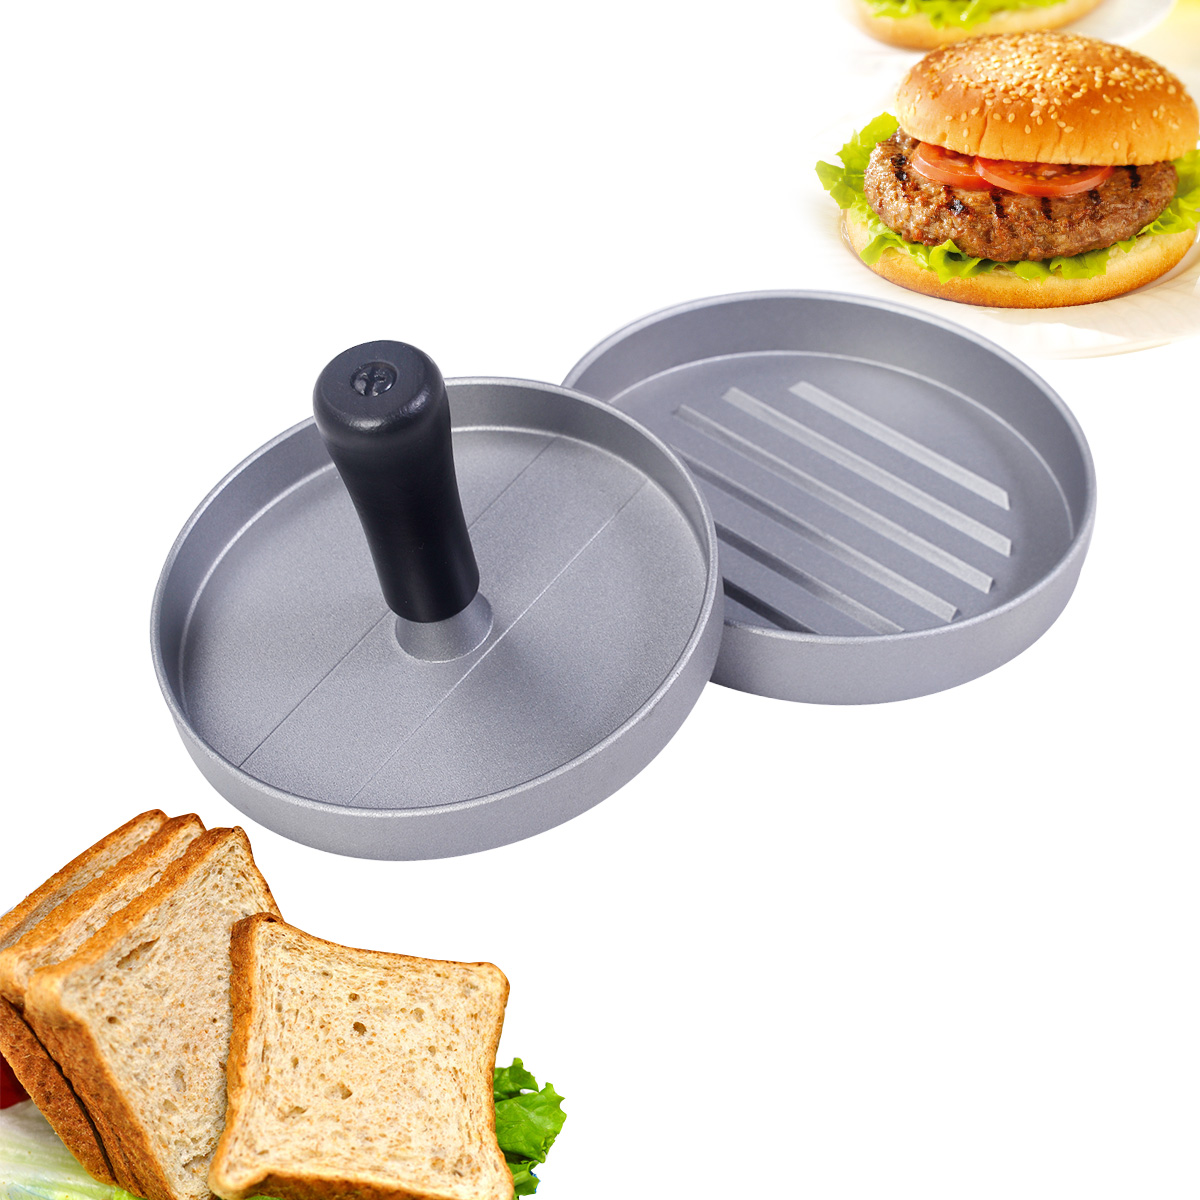 Costway Kitchen Craft Pounder Beef Hamburger Vegetable Burger Press Maker